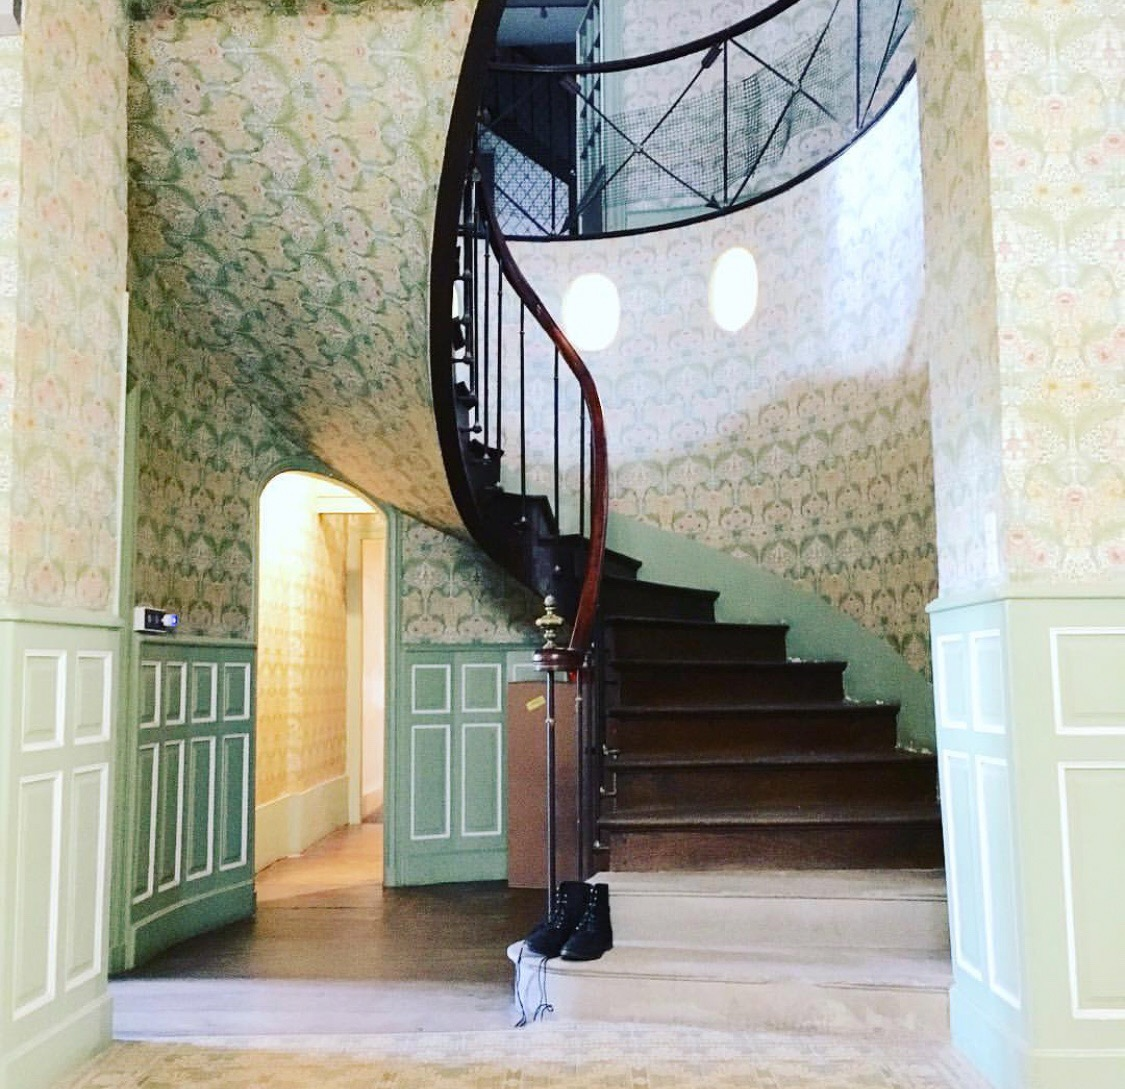 The nautical-themed staircase inside Serge and Malin's Haute-Marne home.